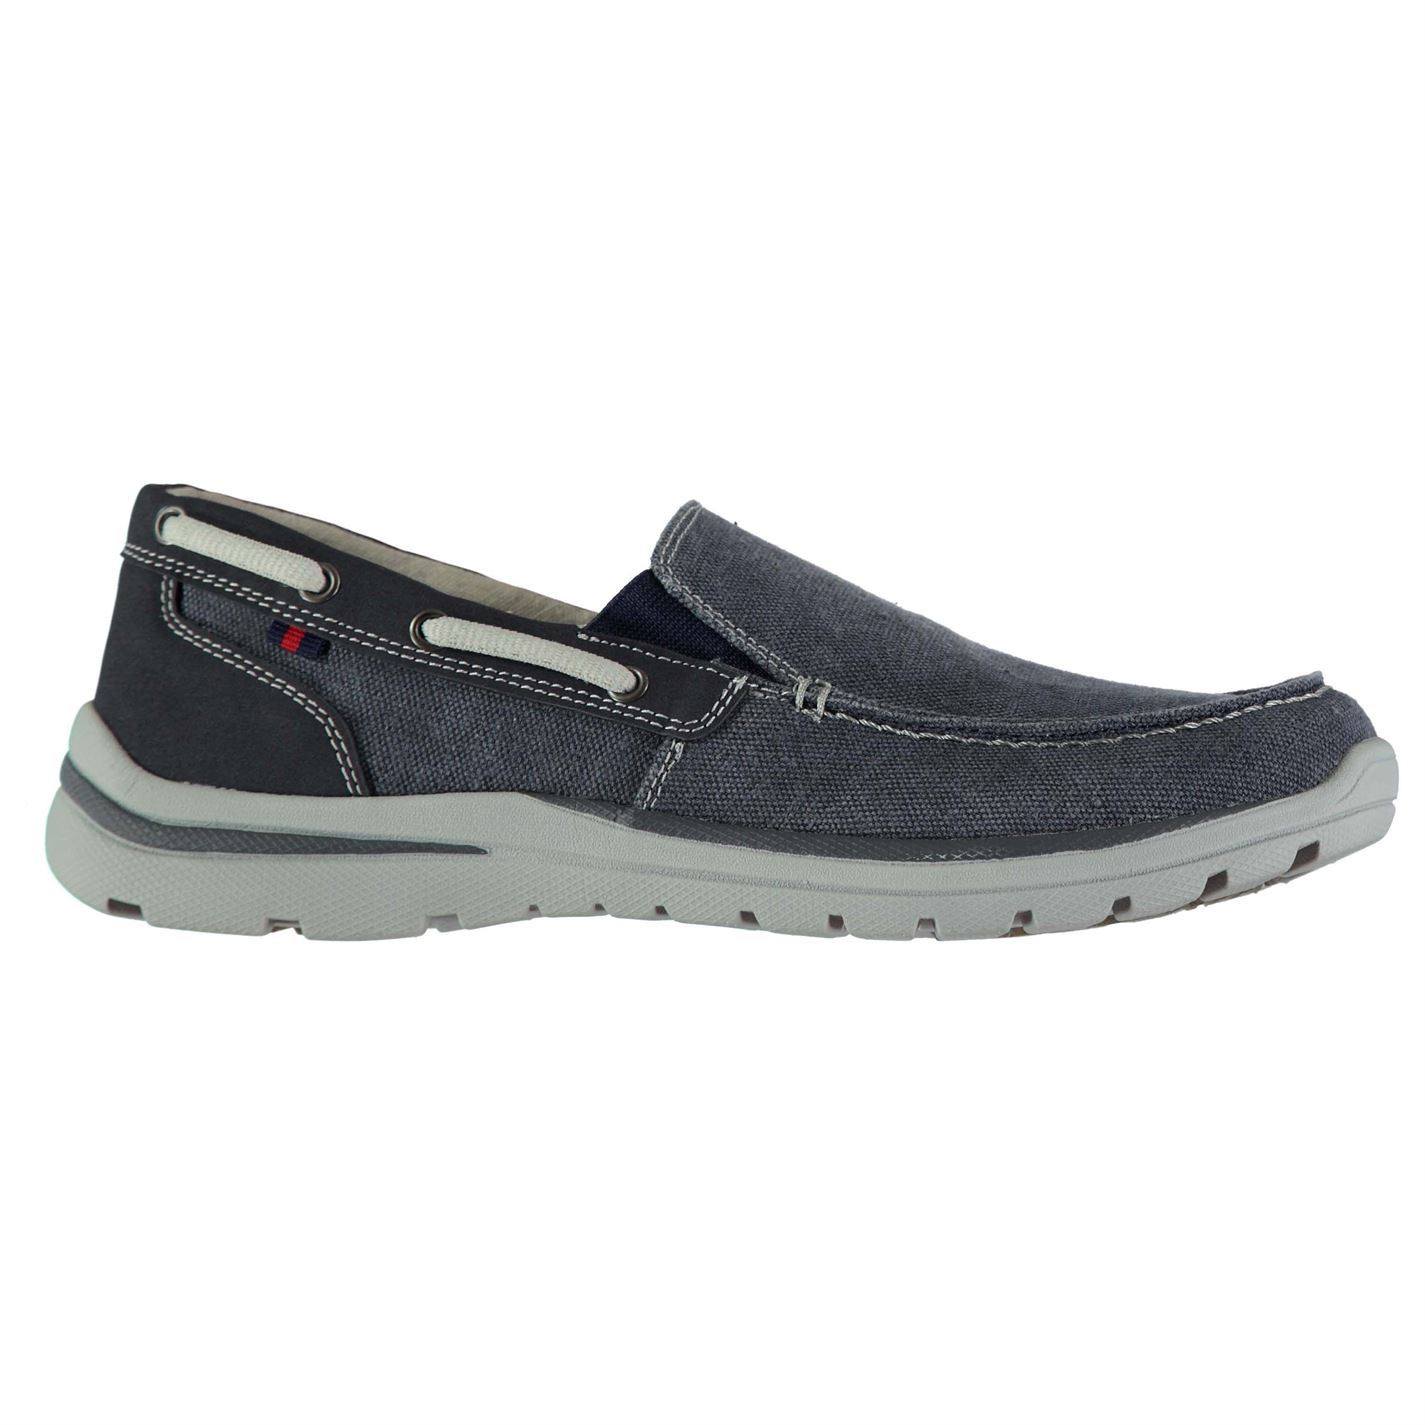 Kangol Mens Gents Brabo Slip On Canvas Boat Shoes Footwear Casual